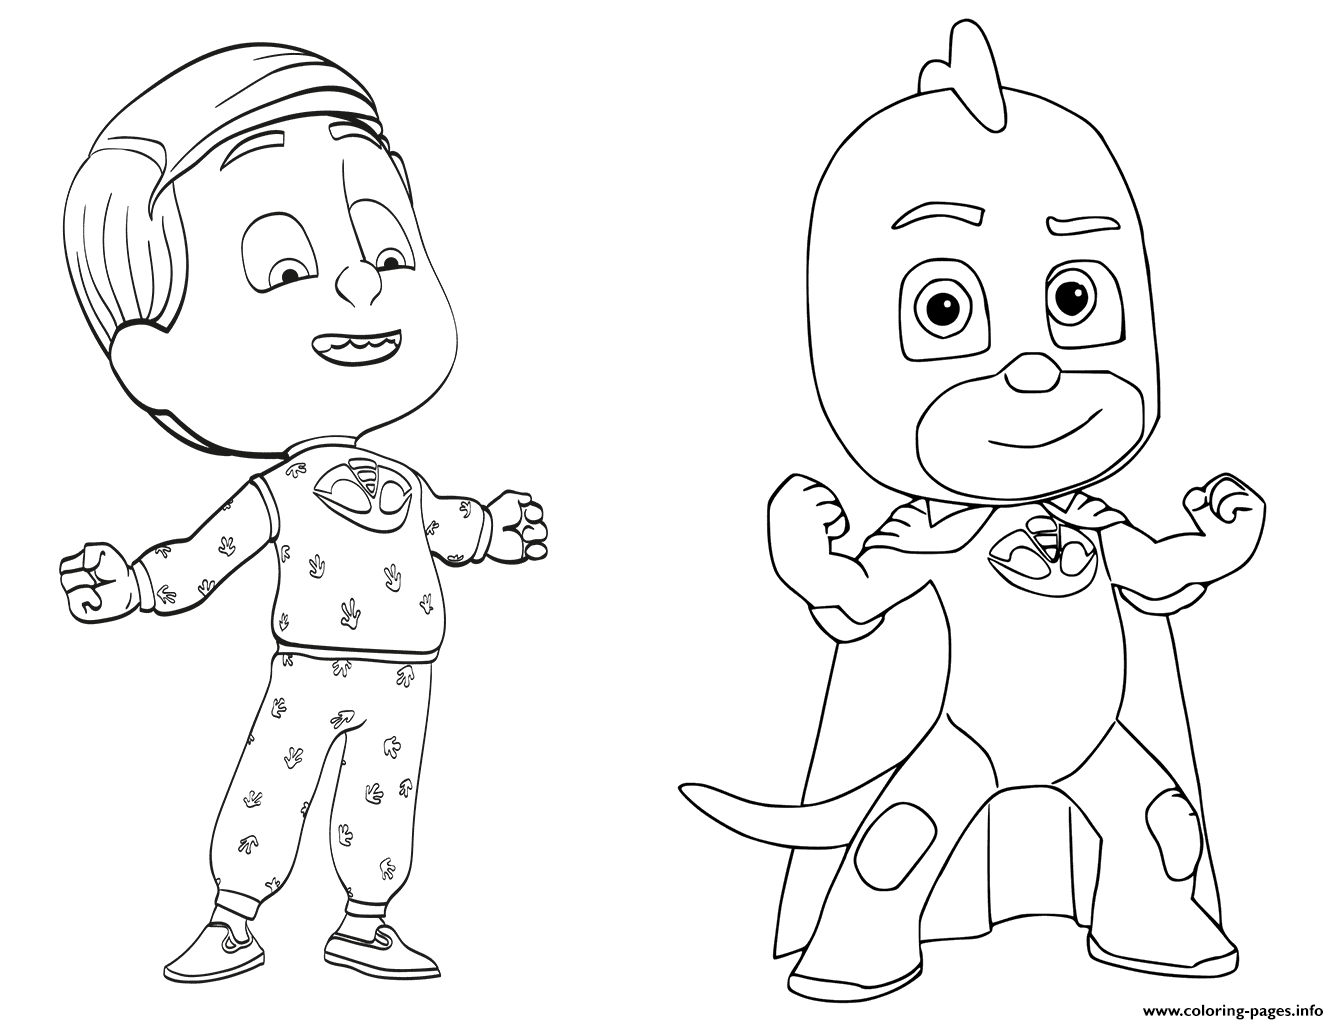 picture about Printable Pj Masks Coloring Pages titled Greg Is Gekko In opposition to PJ Masks Coloring Internet pages Printable